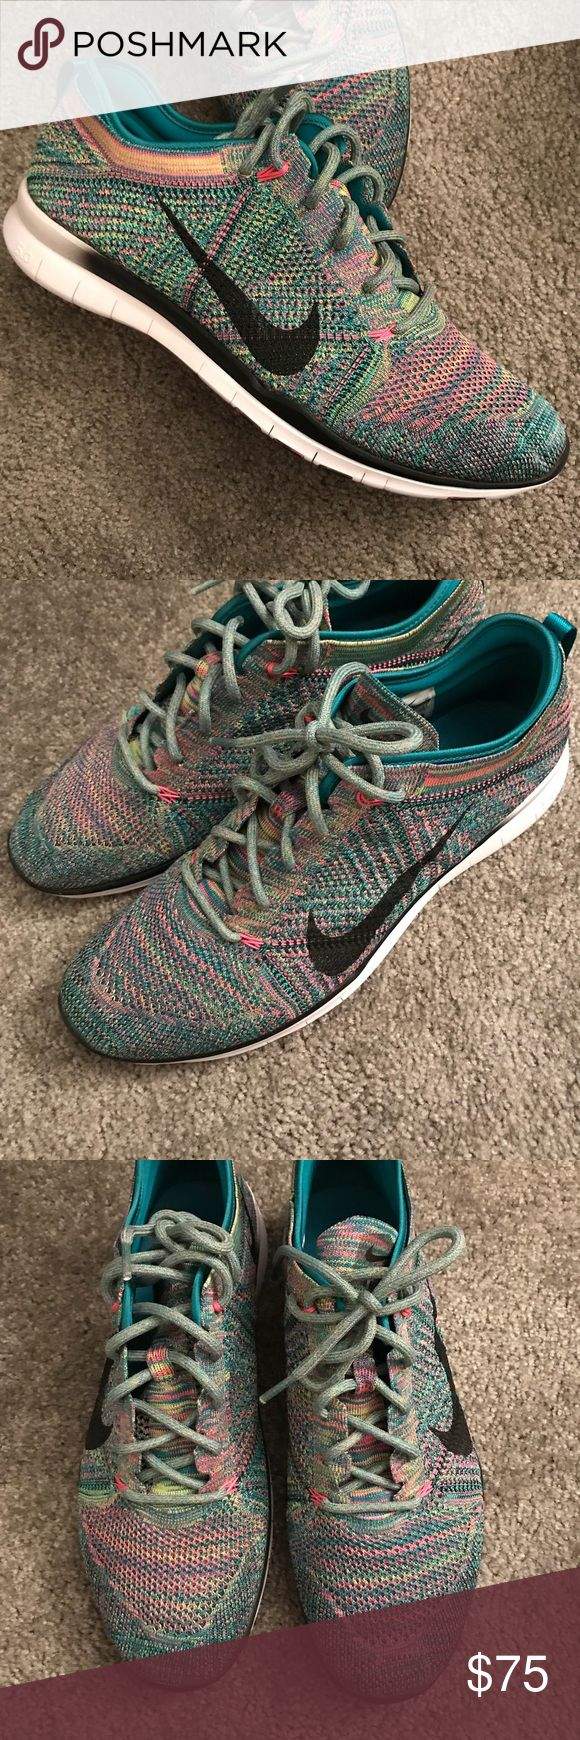 Nike free flyknit 5.0 TR Like new condition. Multicolor flyknit. Lightweight. Women's shoe size 14= men's size 13. Nike Shoes Athletic Shoes